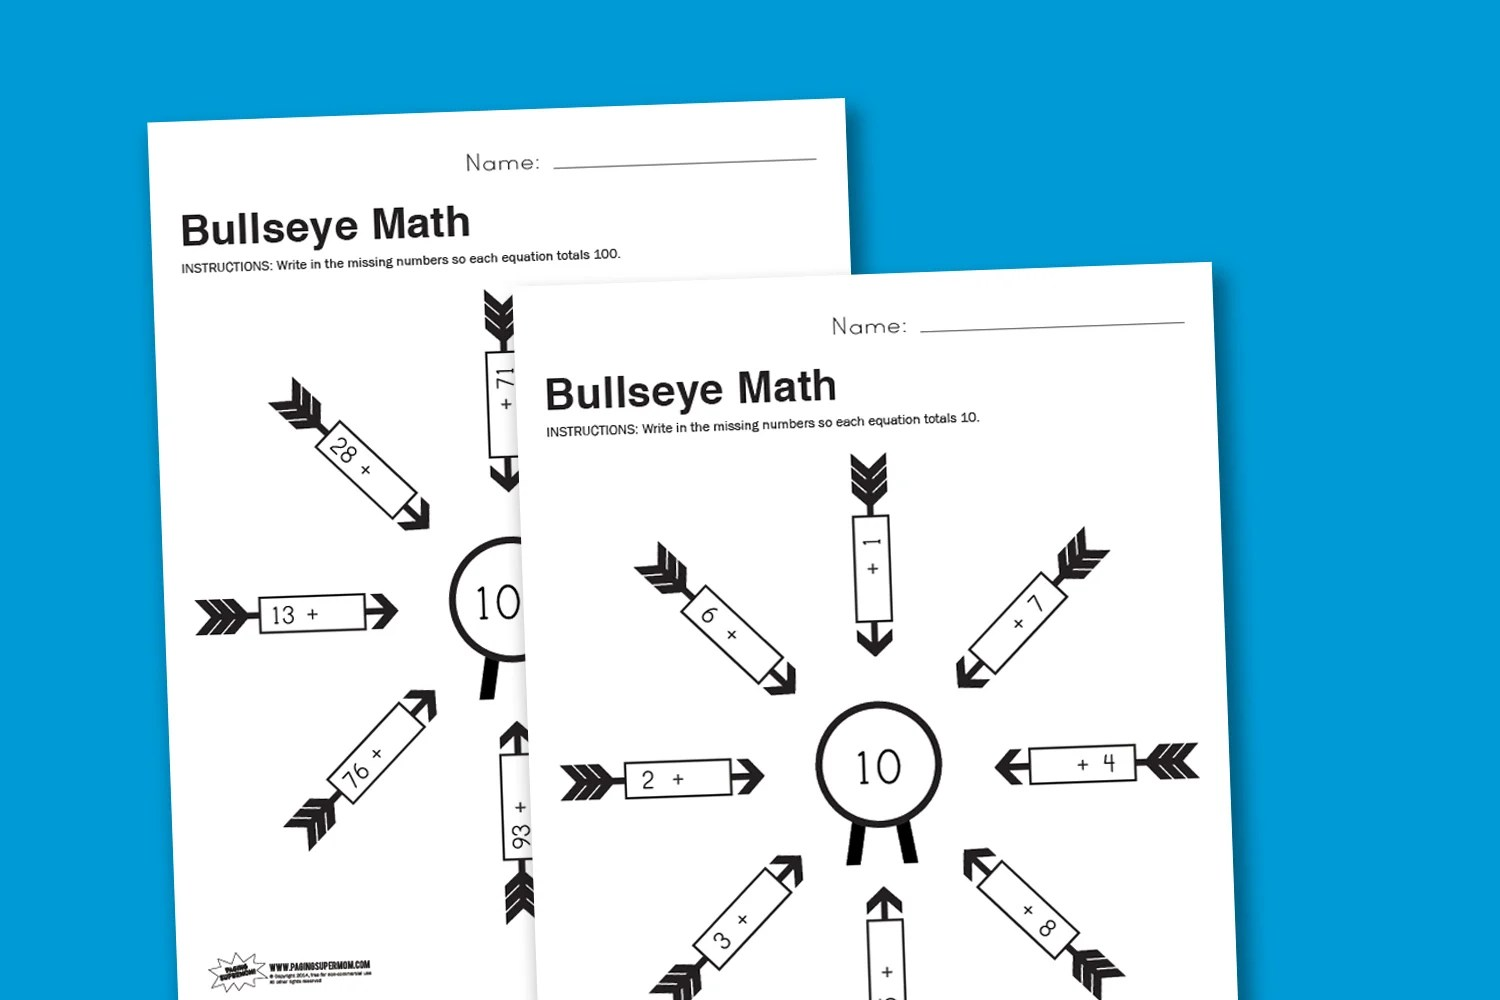 Worksheet Wednesday Bullseye Math